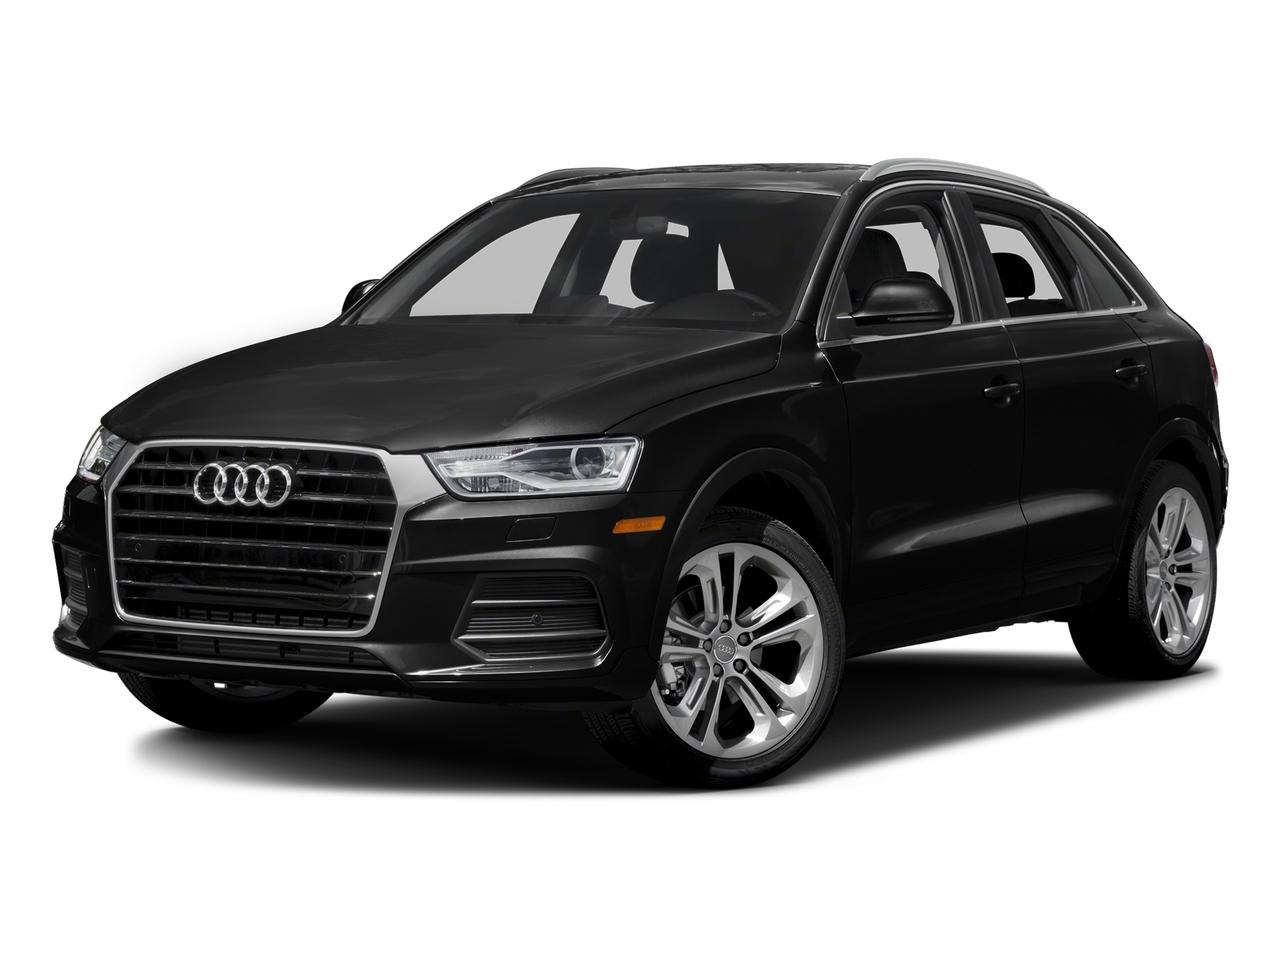 2017 Audi Q3 Vehicle Photo in Allentown, PA 18103